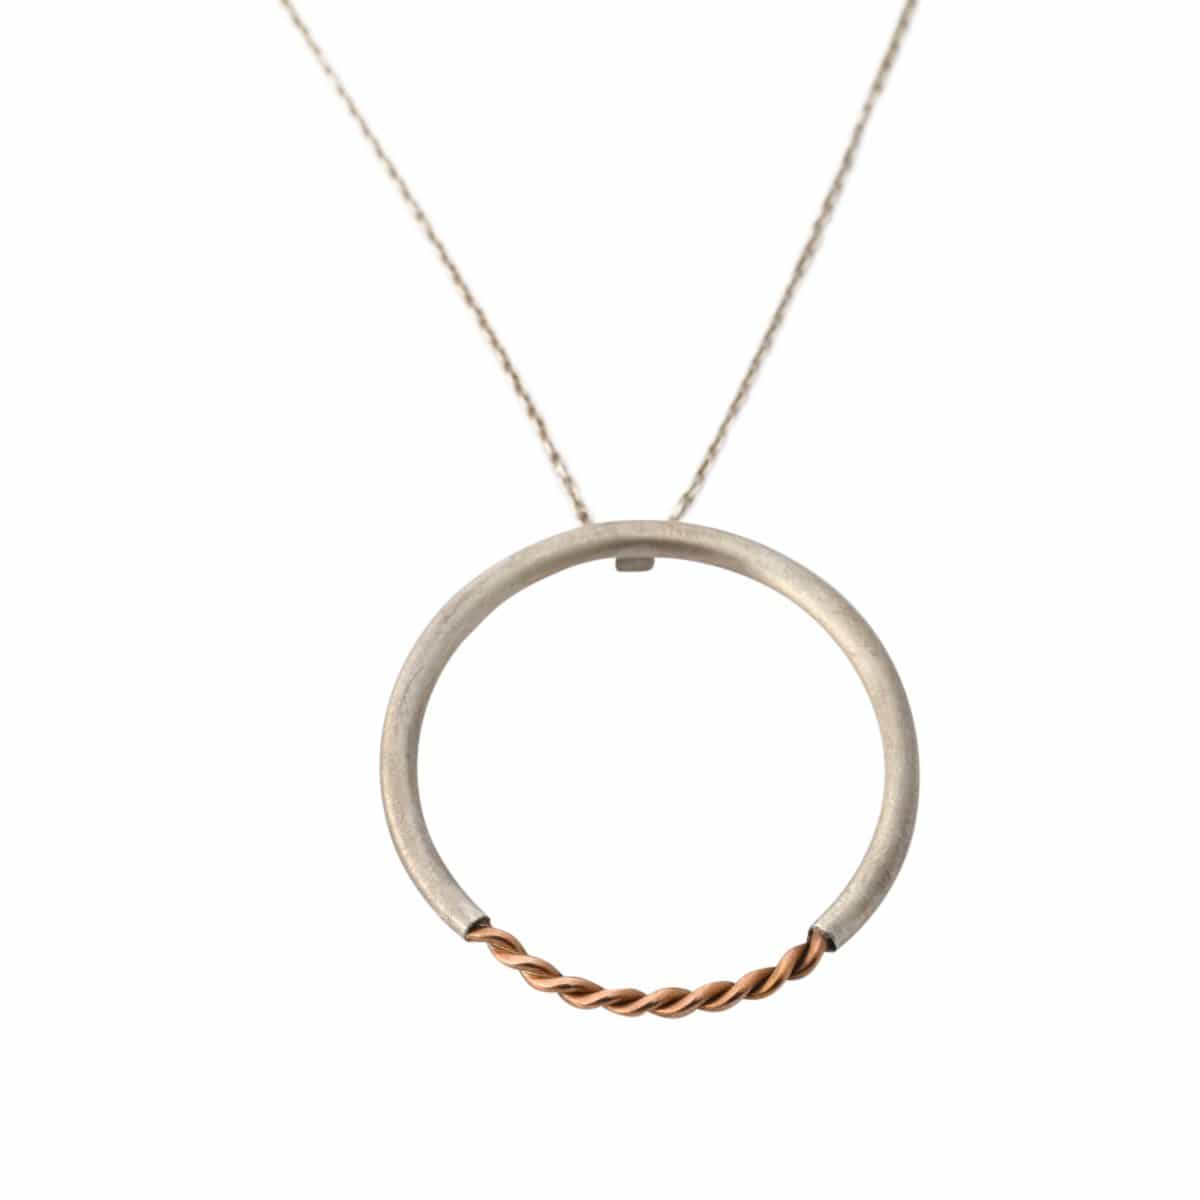 Simplicated Jewelry Necklaces Geometric Circle Pendant Necklace